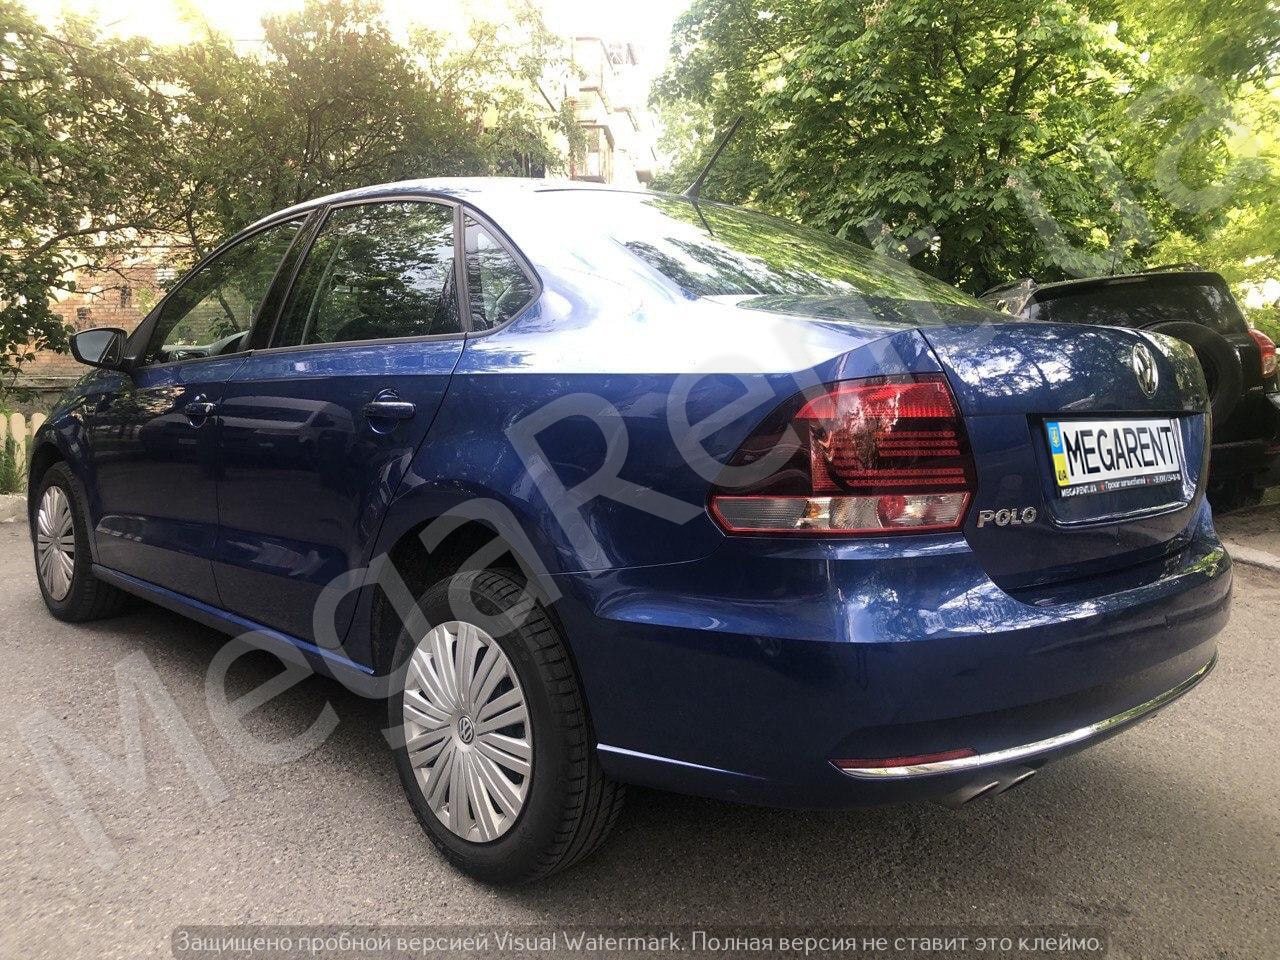 Car rental Volkswagen Polo sedan 2016 in Kyiv - photo 4